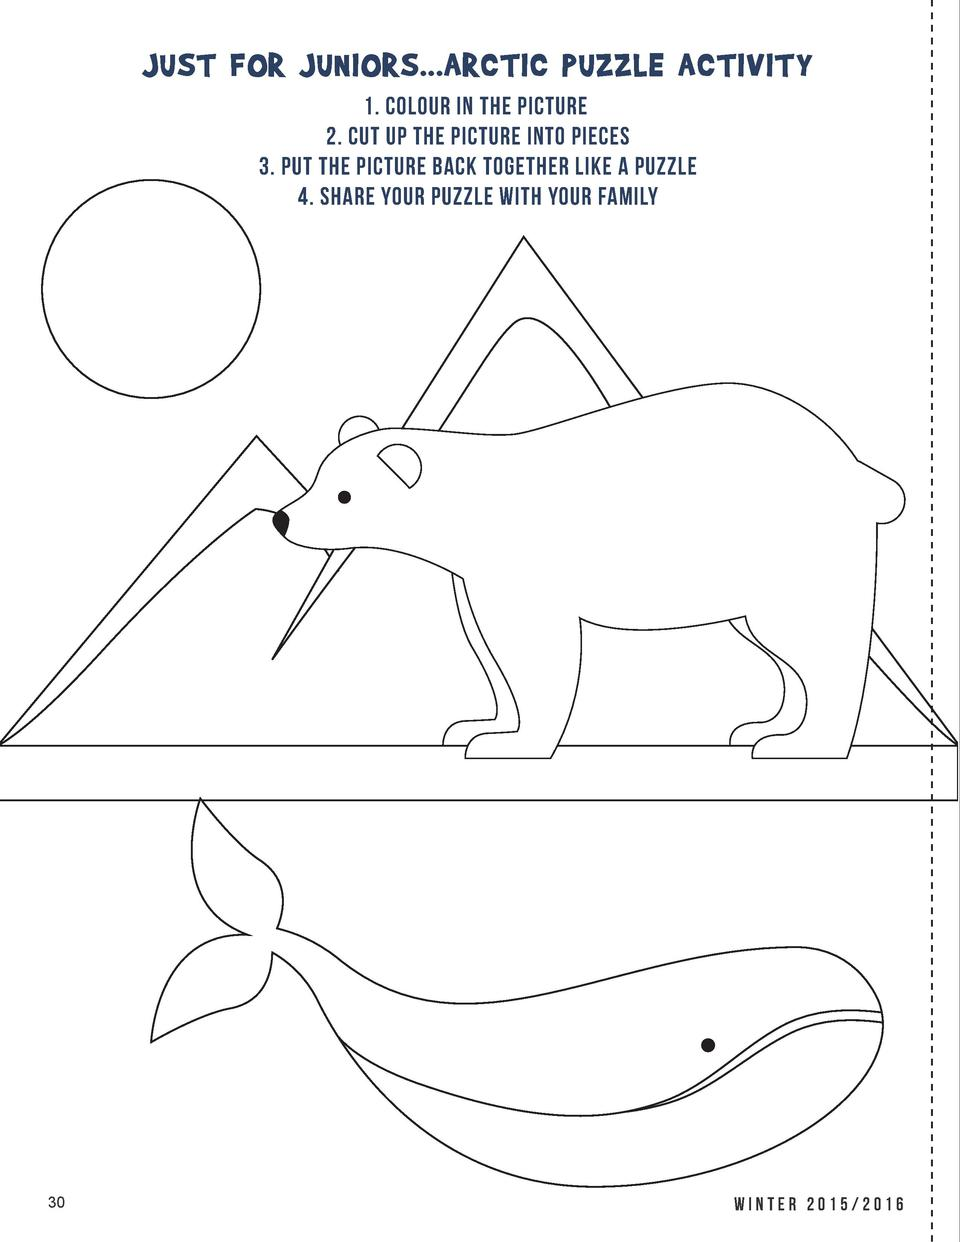 JUST FOR JUNIORS...ARCTIC PUZZLE ACTIVITY 1. COLOUR IN THE PICTURE 2. CUT UP THE PICTURE INTO PIECES 3. PUT THE PICTURE BA...